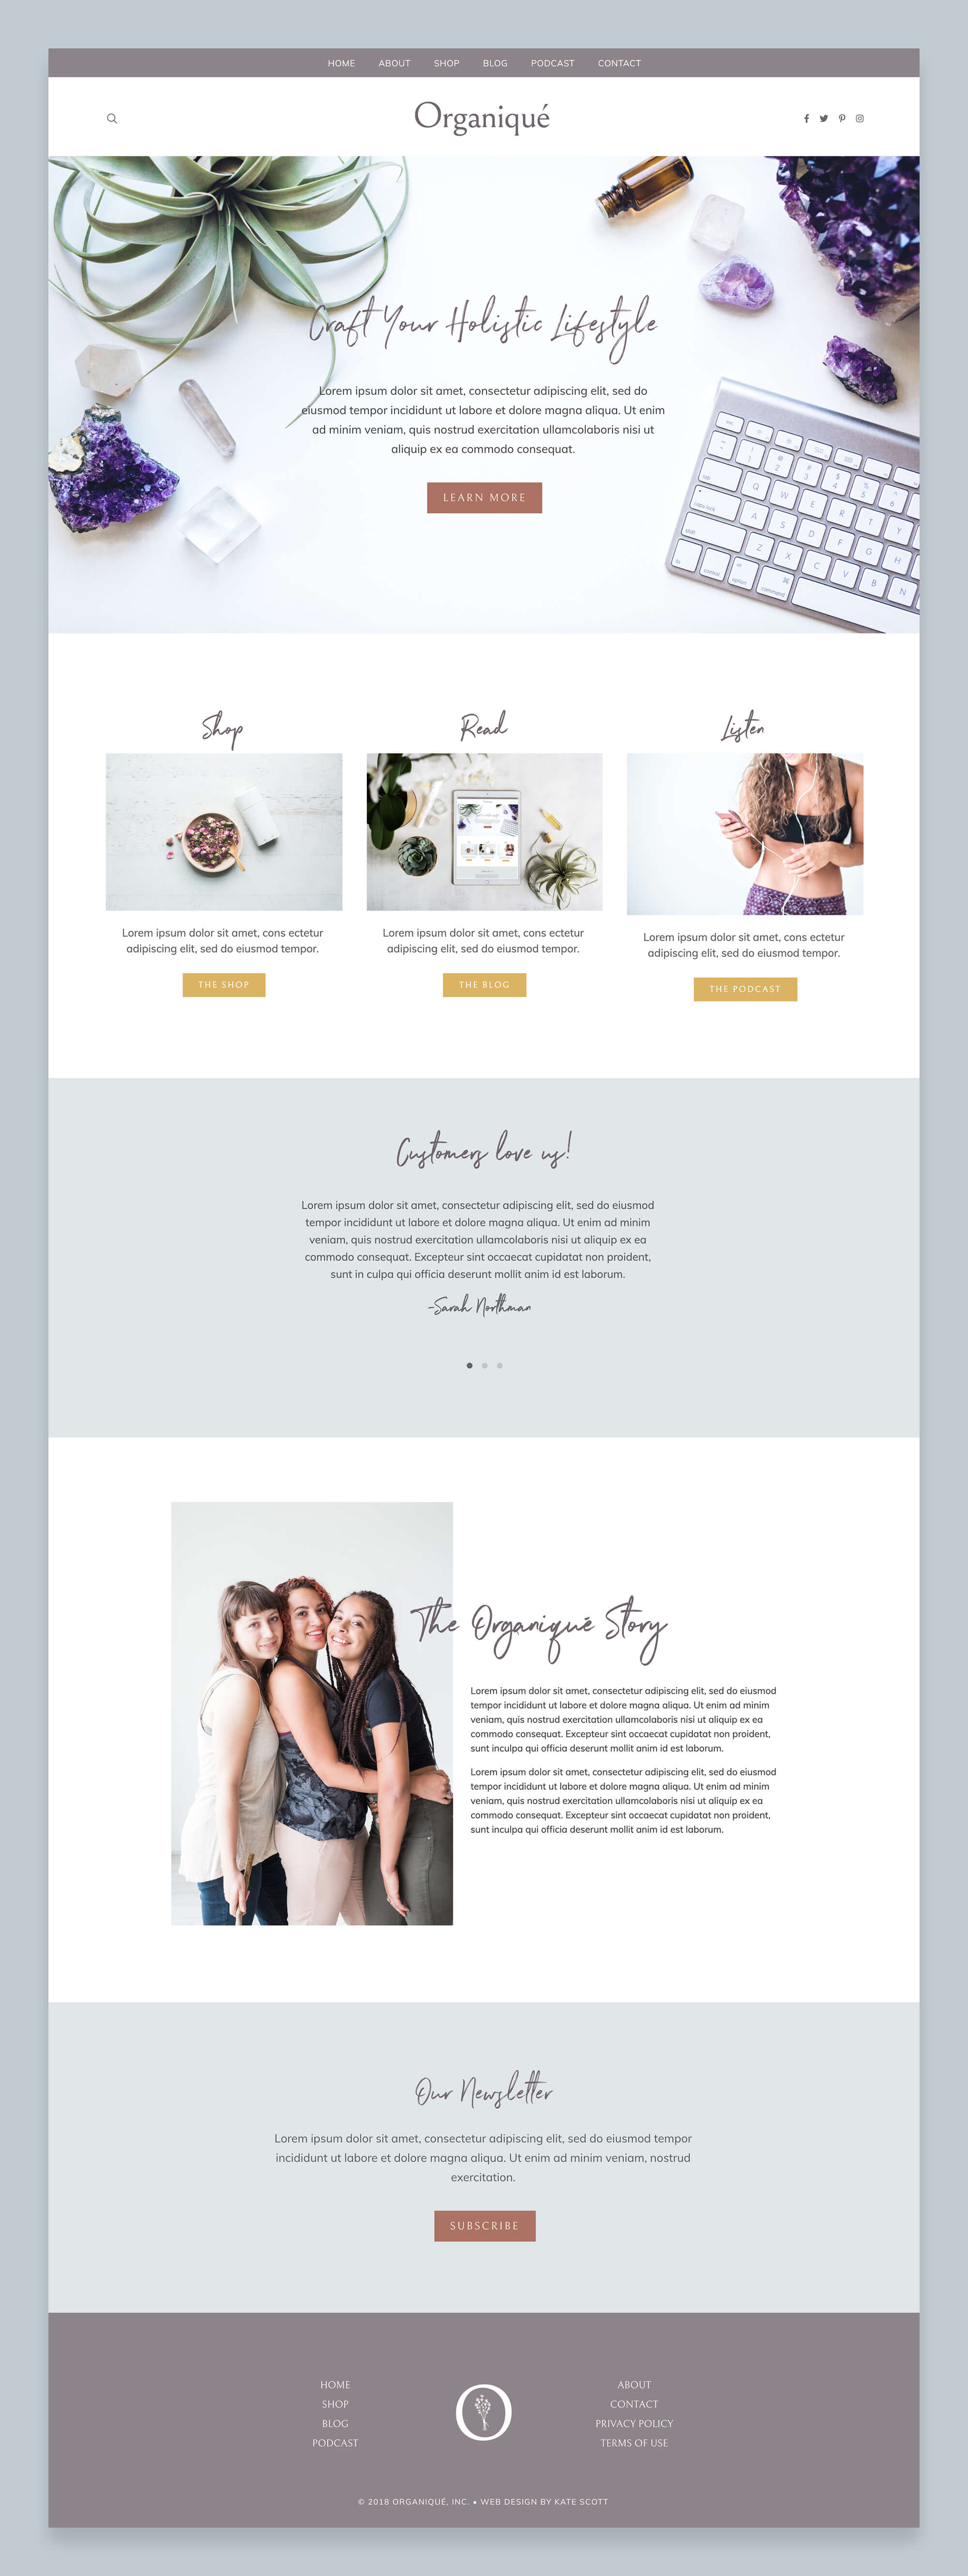 Organiqué Custom Squarespace Website Design